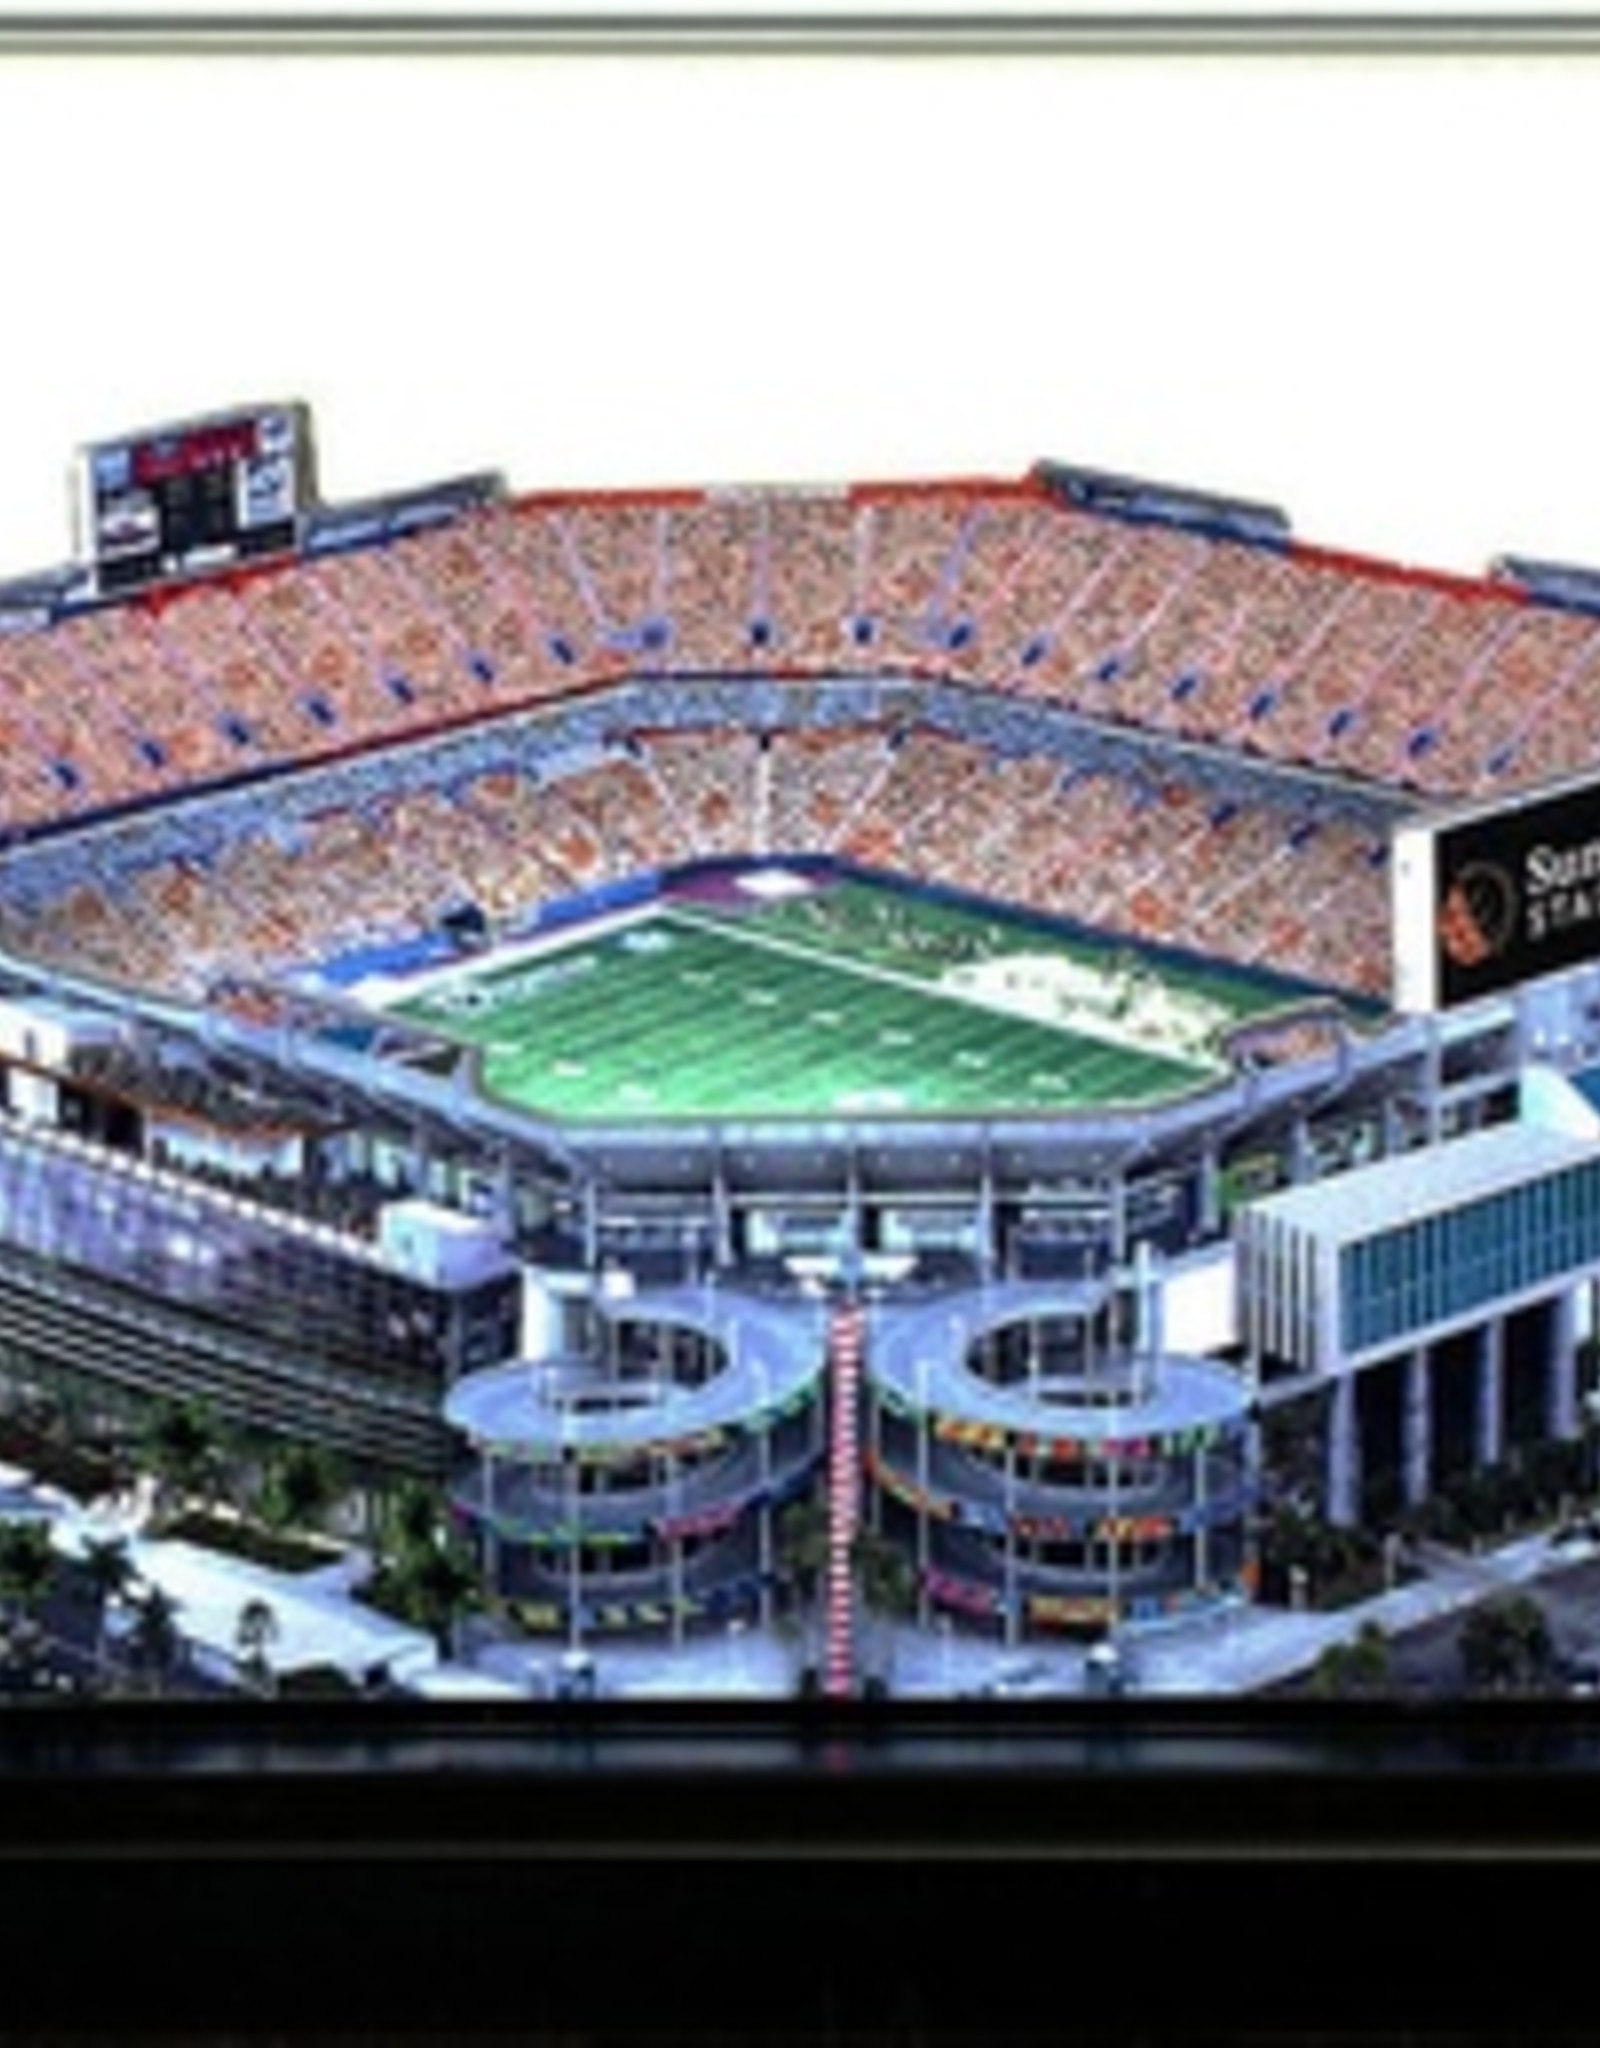 HOMEFIELDS Miami Dolphins 13IN Lighted Replica Sun Life Stadium